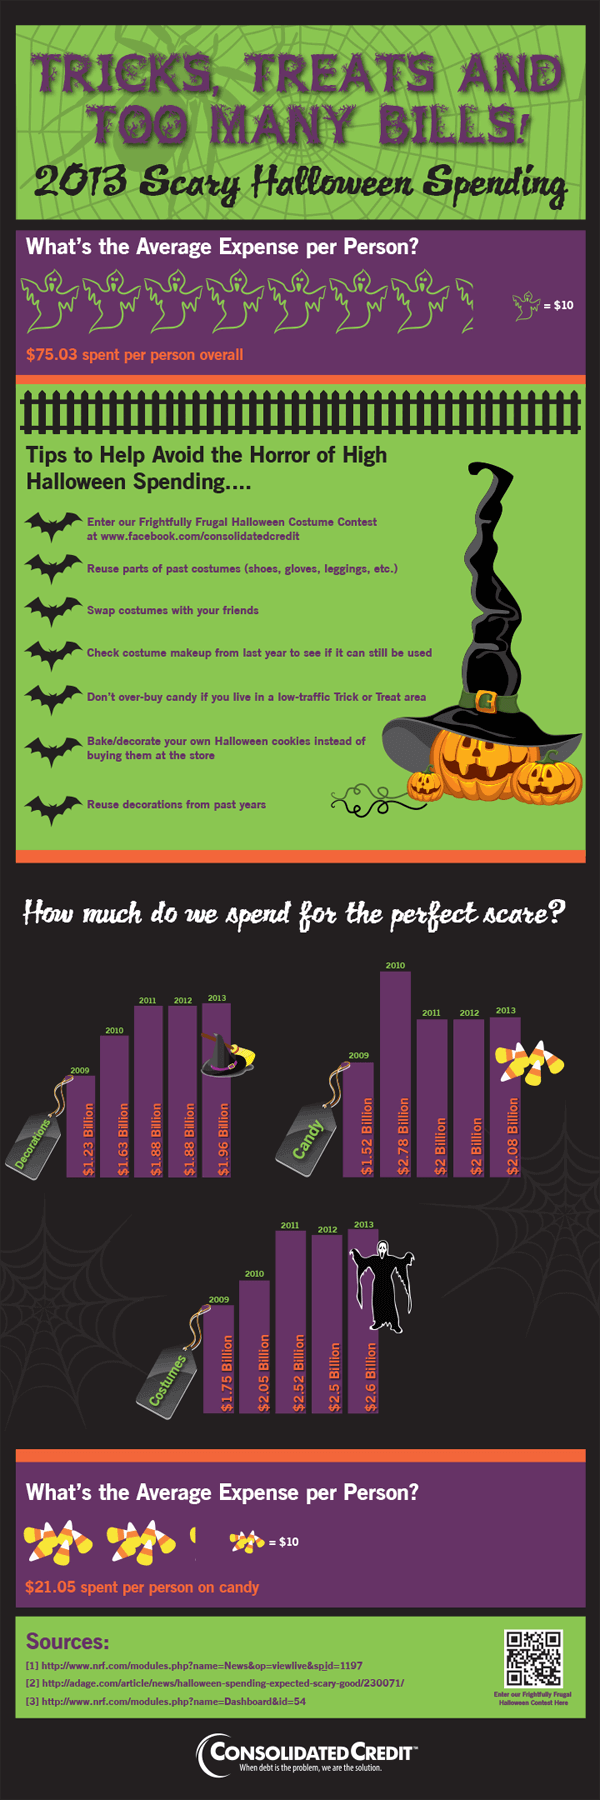 Graphic displaying how you can save money to avoid paying too many bills this Halloween